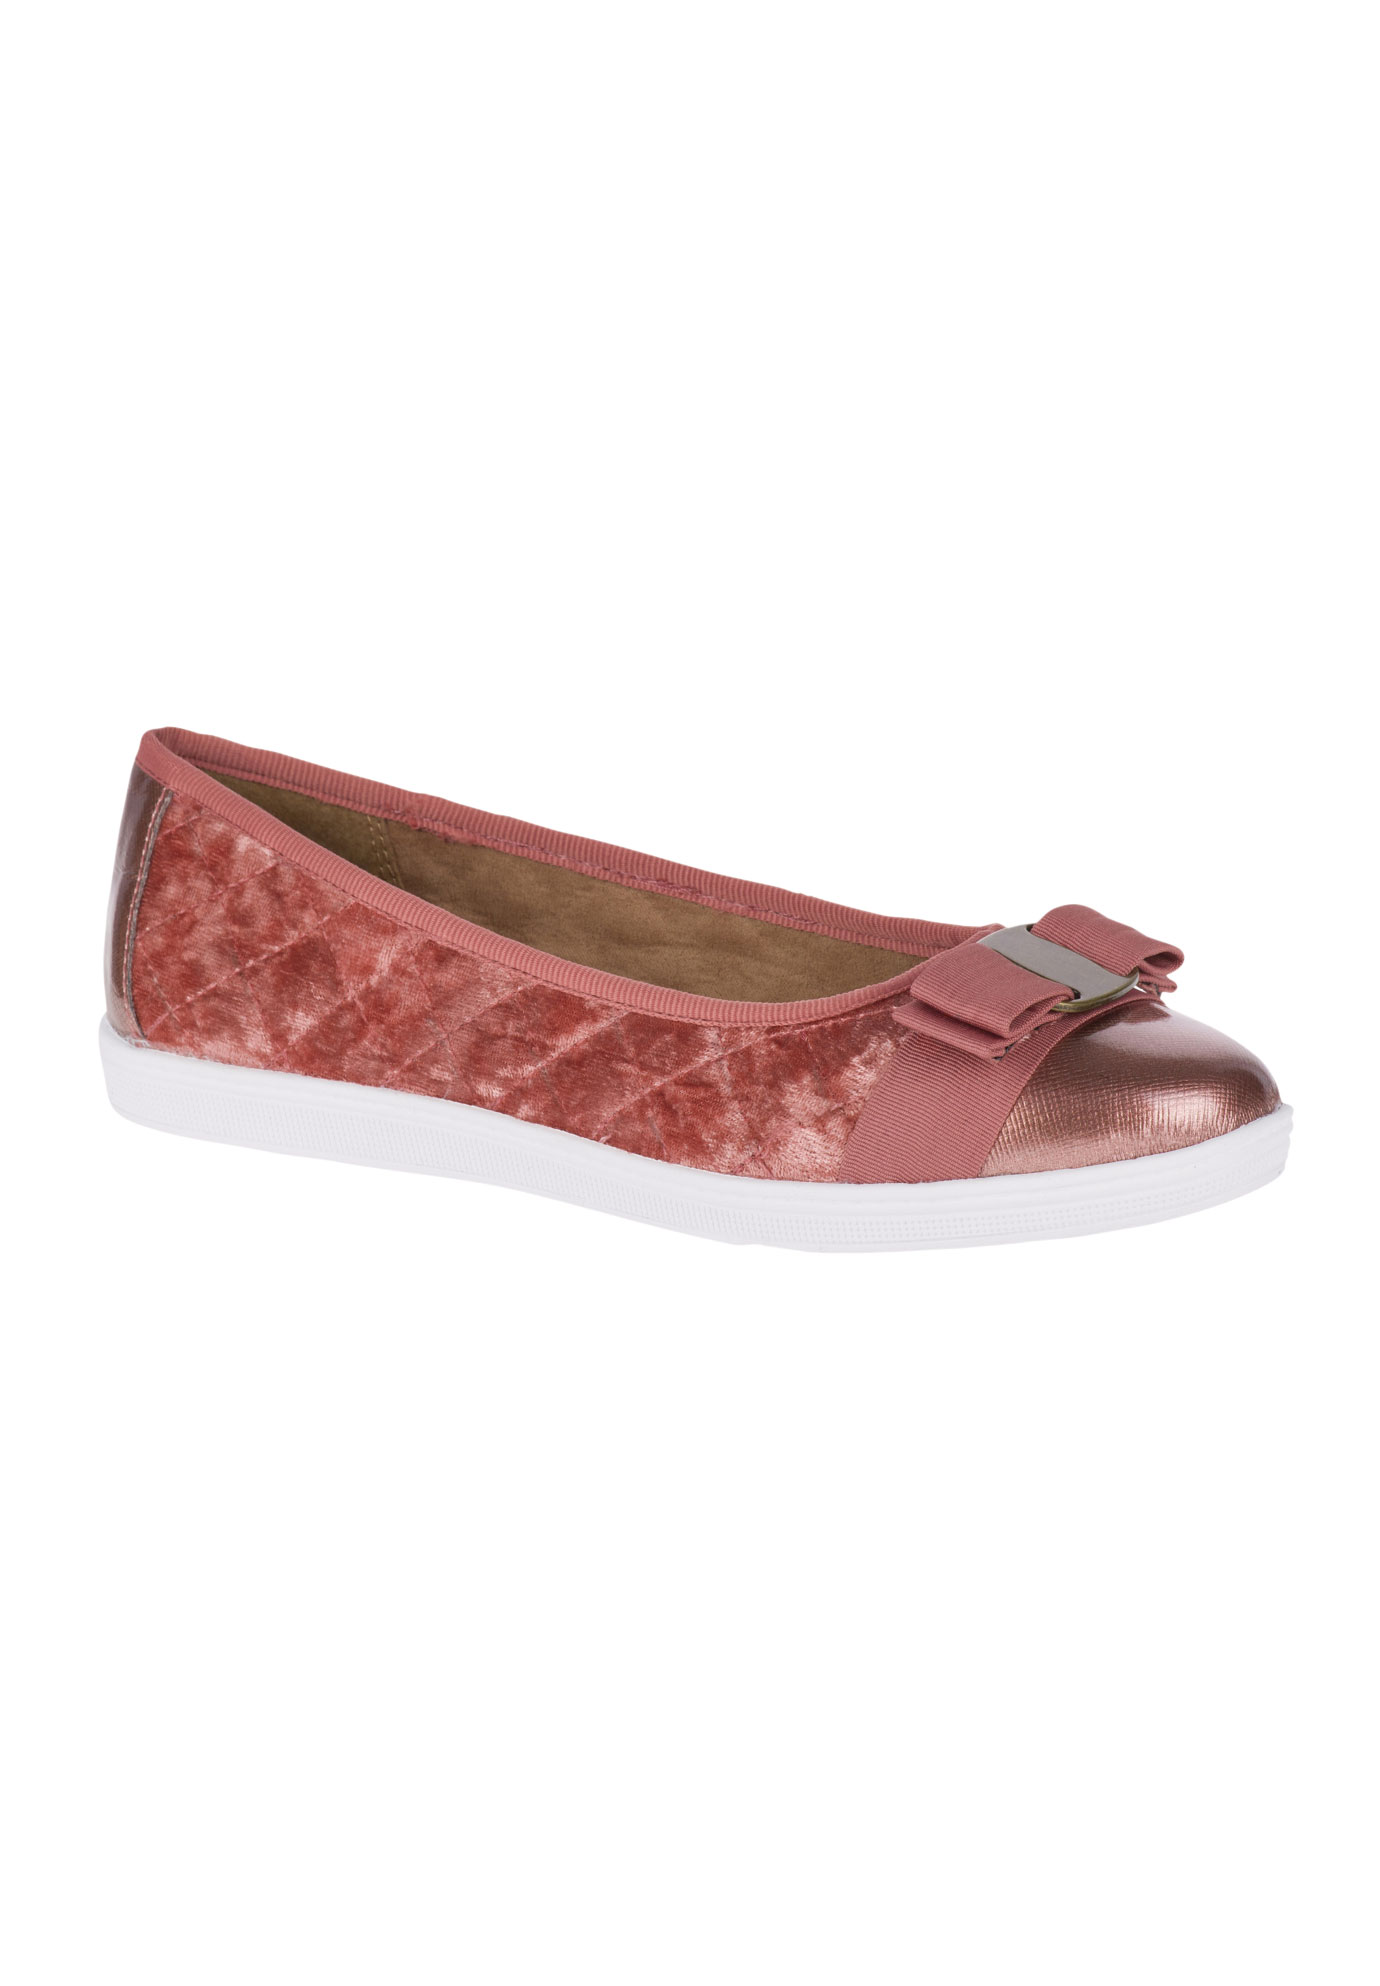 Faeth Flats by Soft Style, ANTIQUE ROSE VELVET, hi-res